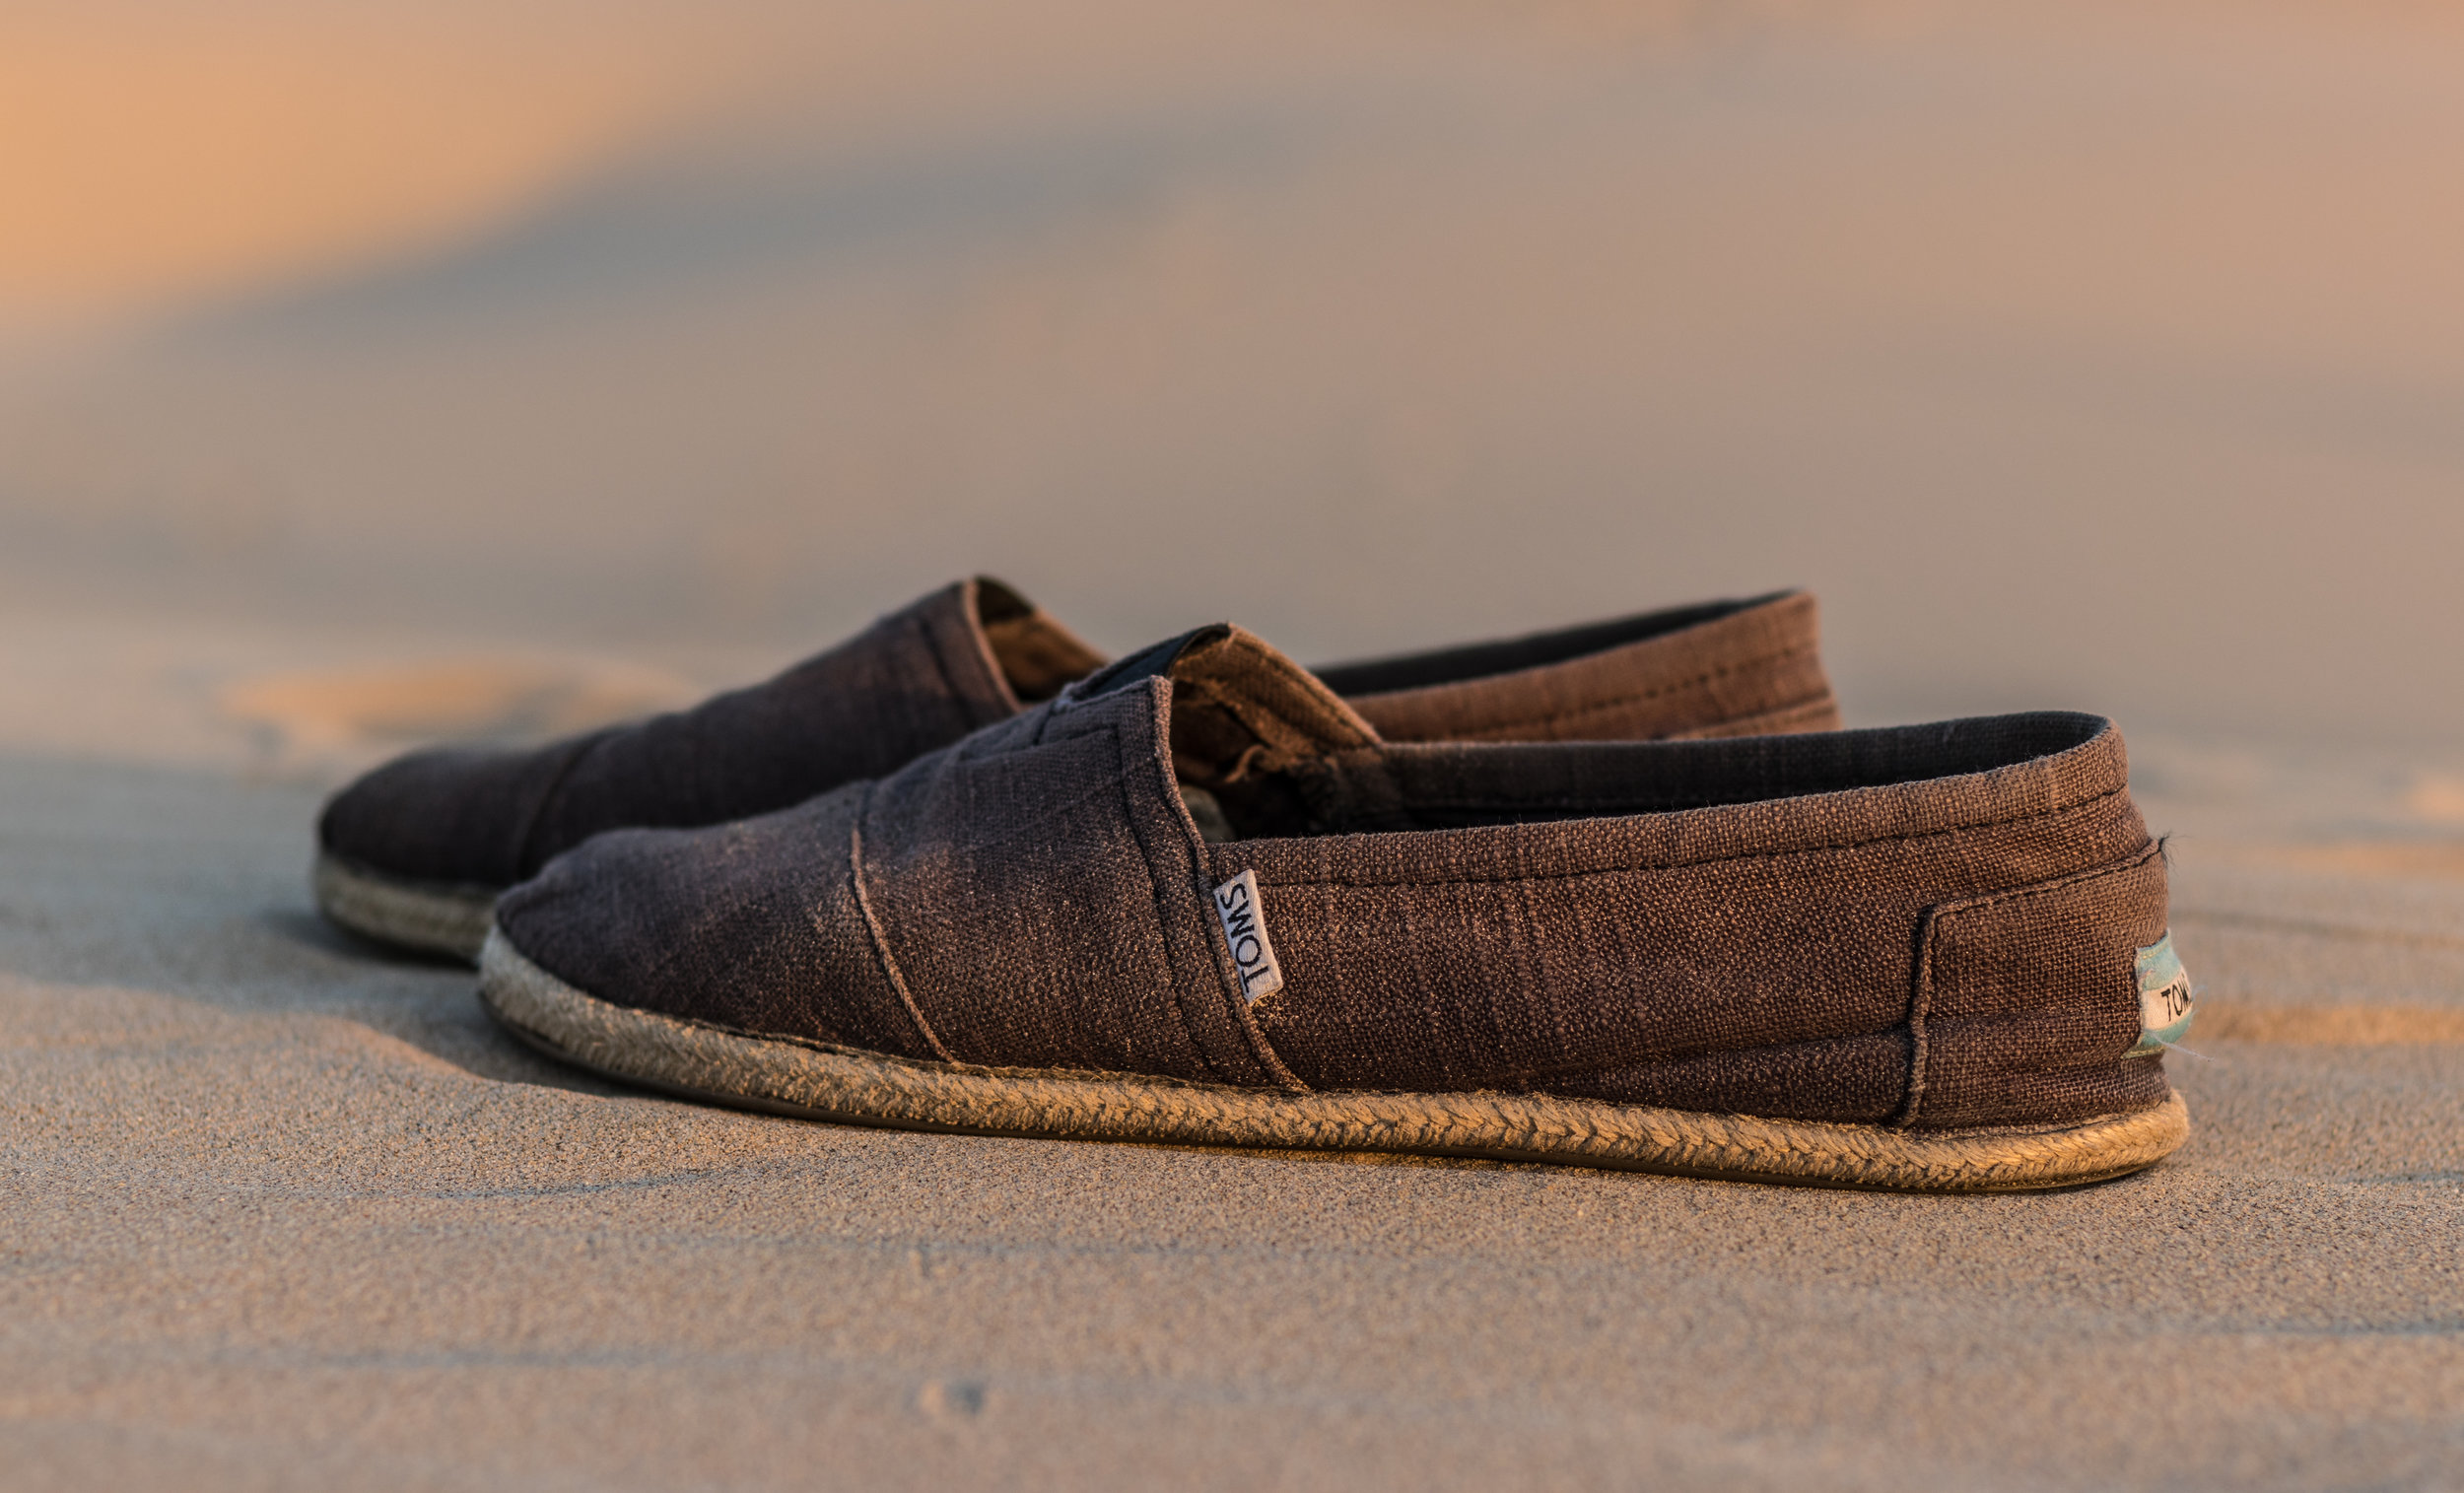 TOMS shoes send a very clear message. What message does your business send?